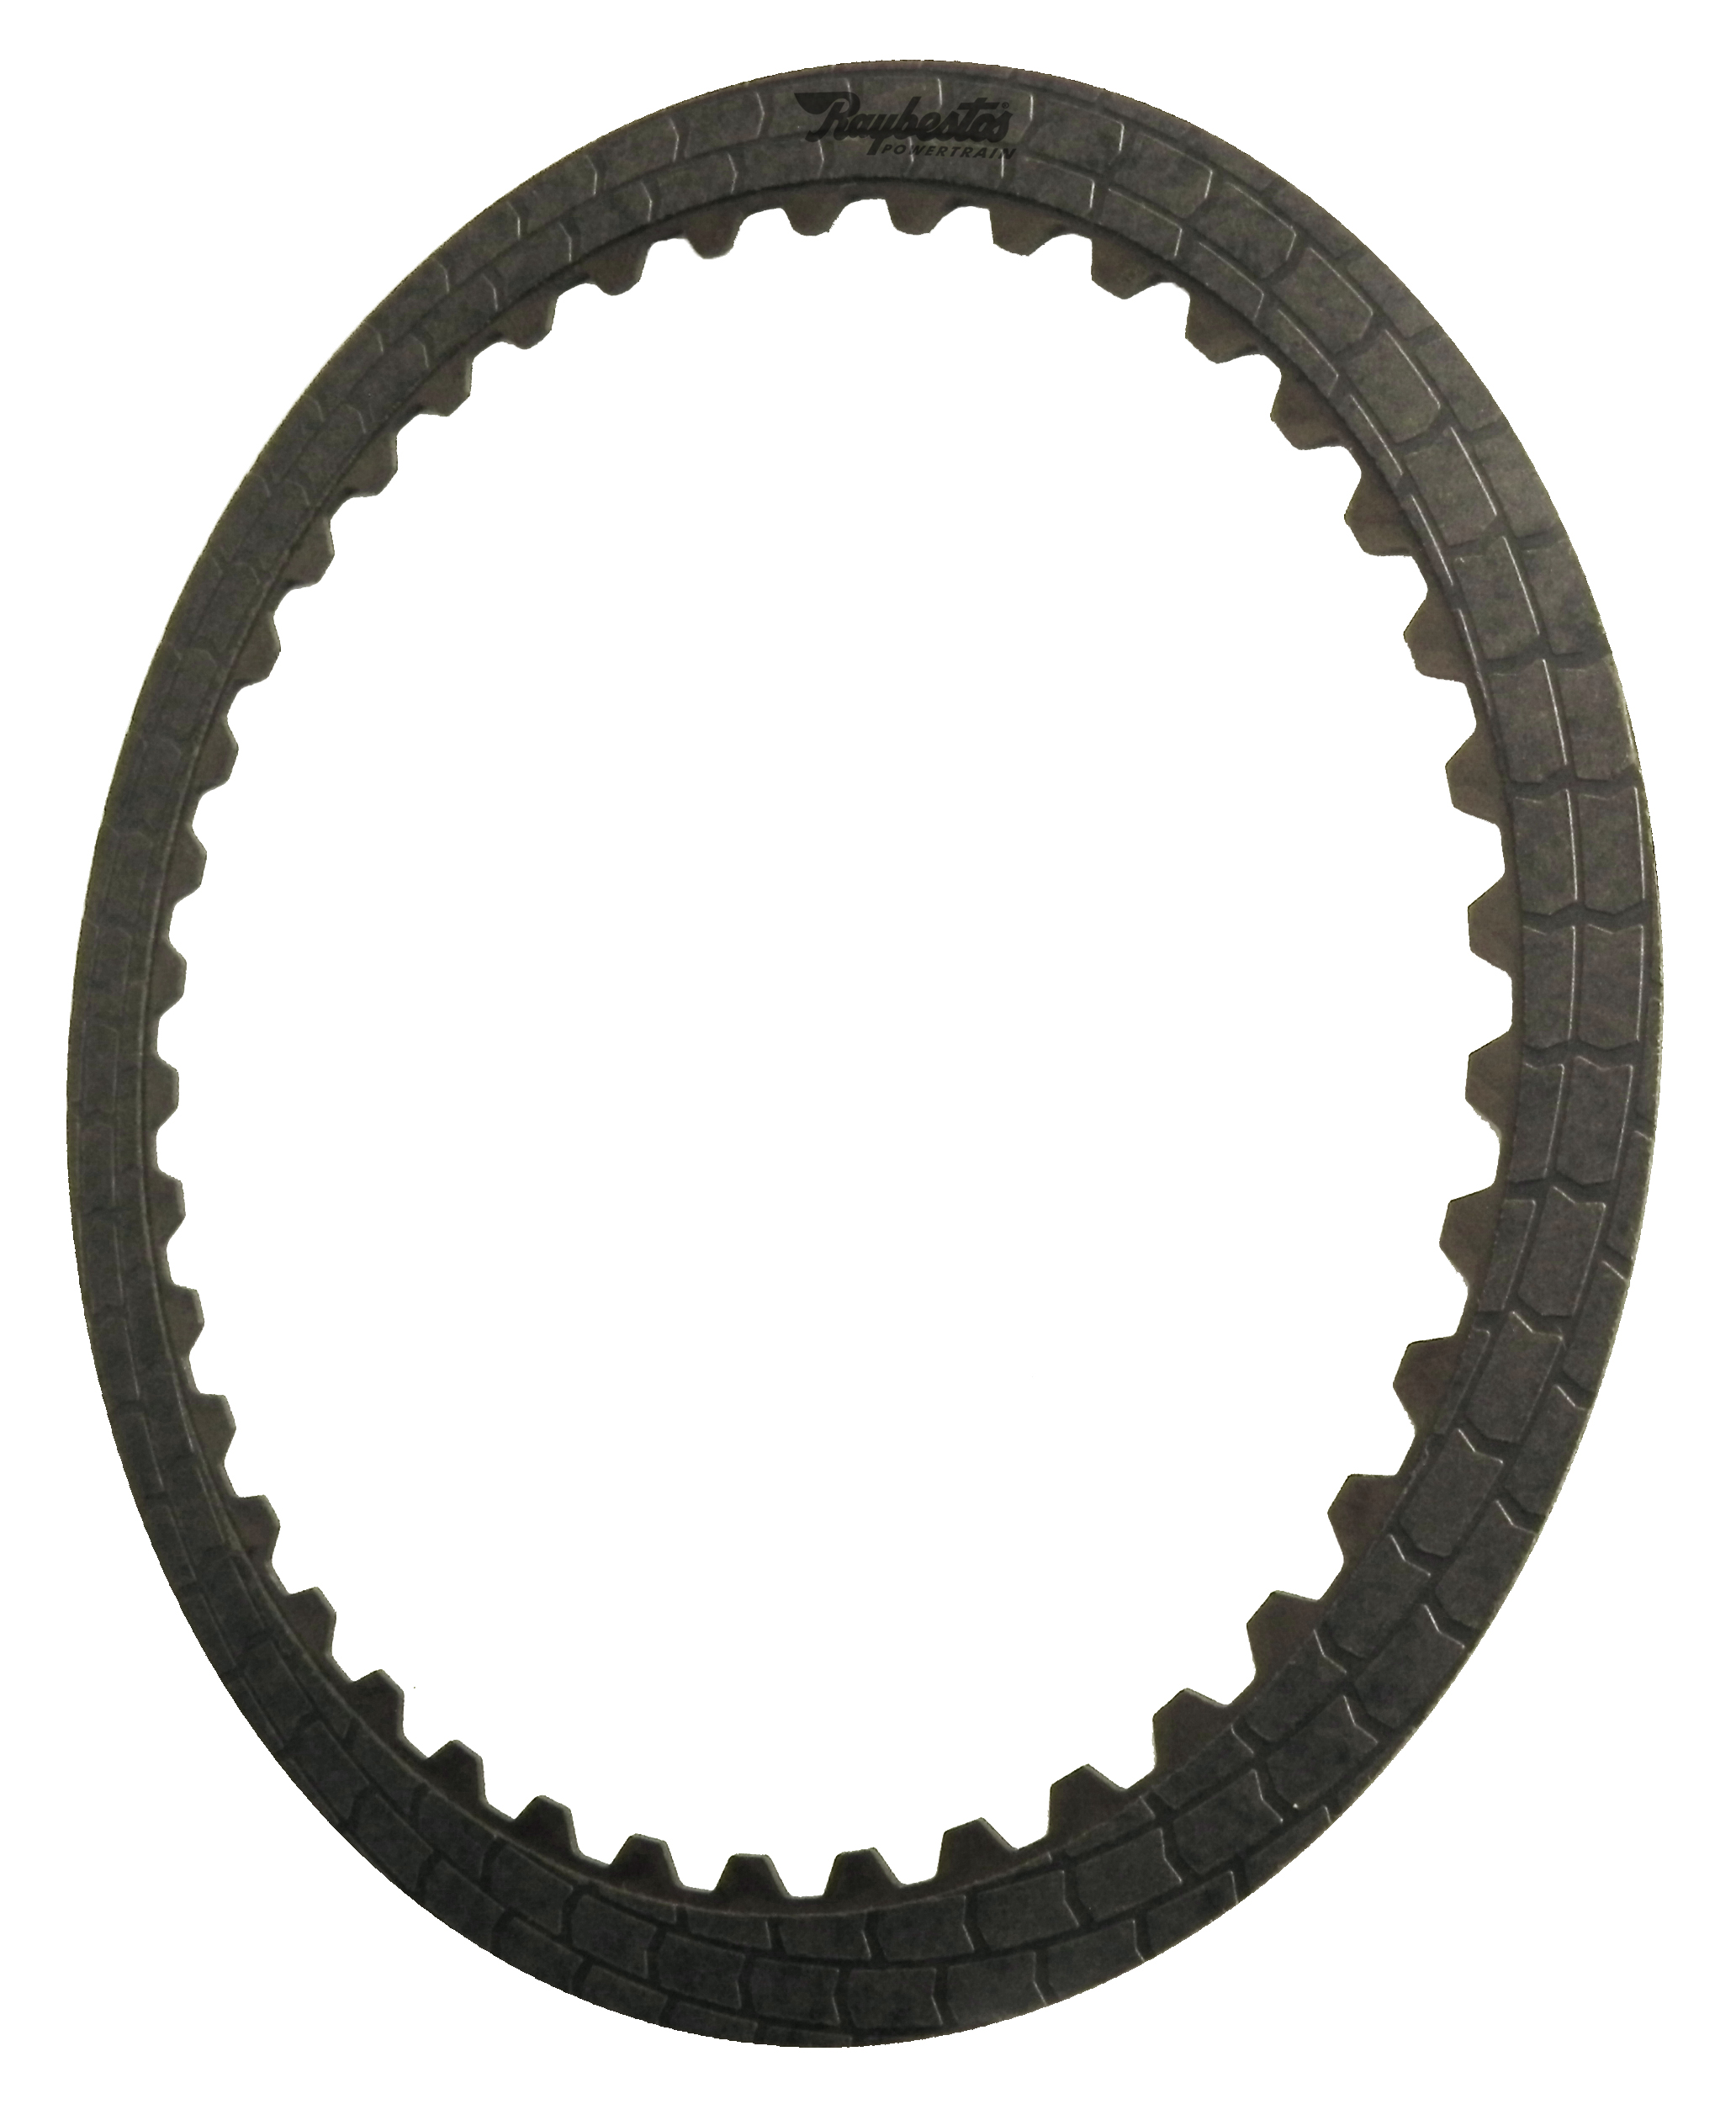 RH558590 | 2007-ON Friction Clutch Plate (HT) Hybrid Technology #1 Clutch (1-2-3-4) (Forward) Proprietary High Energy (HT)